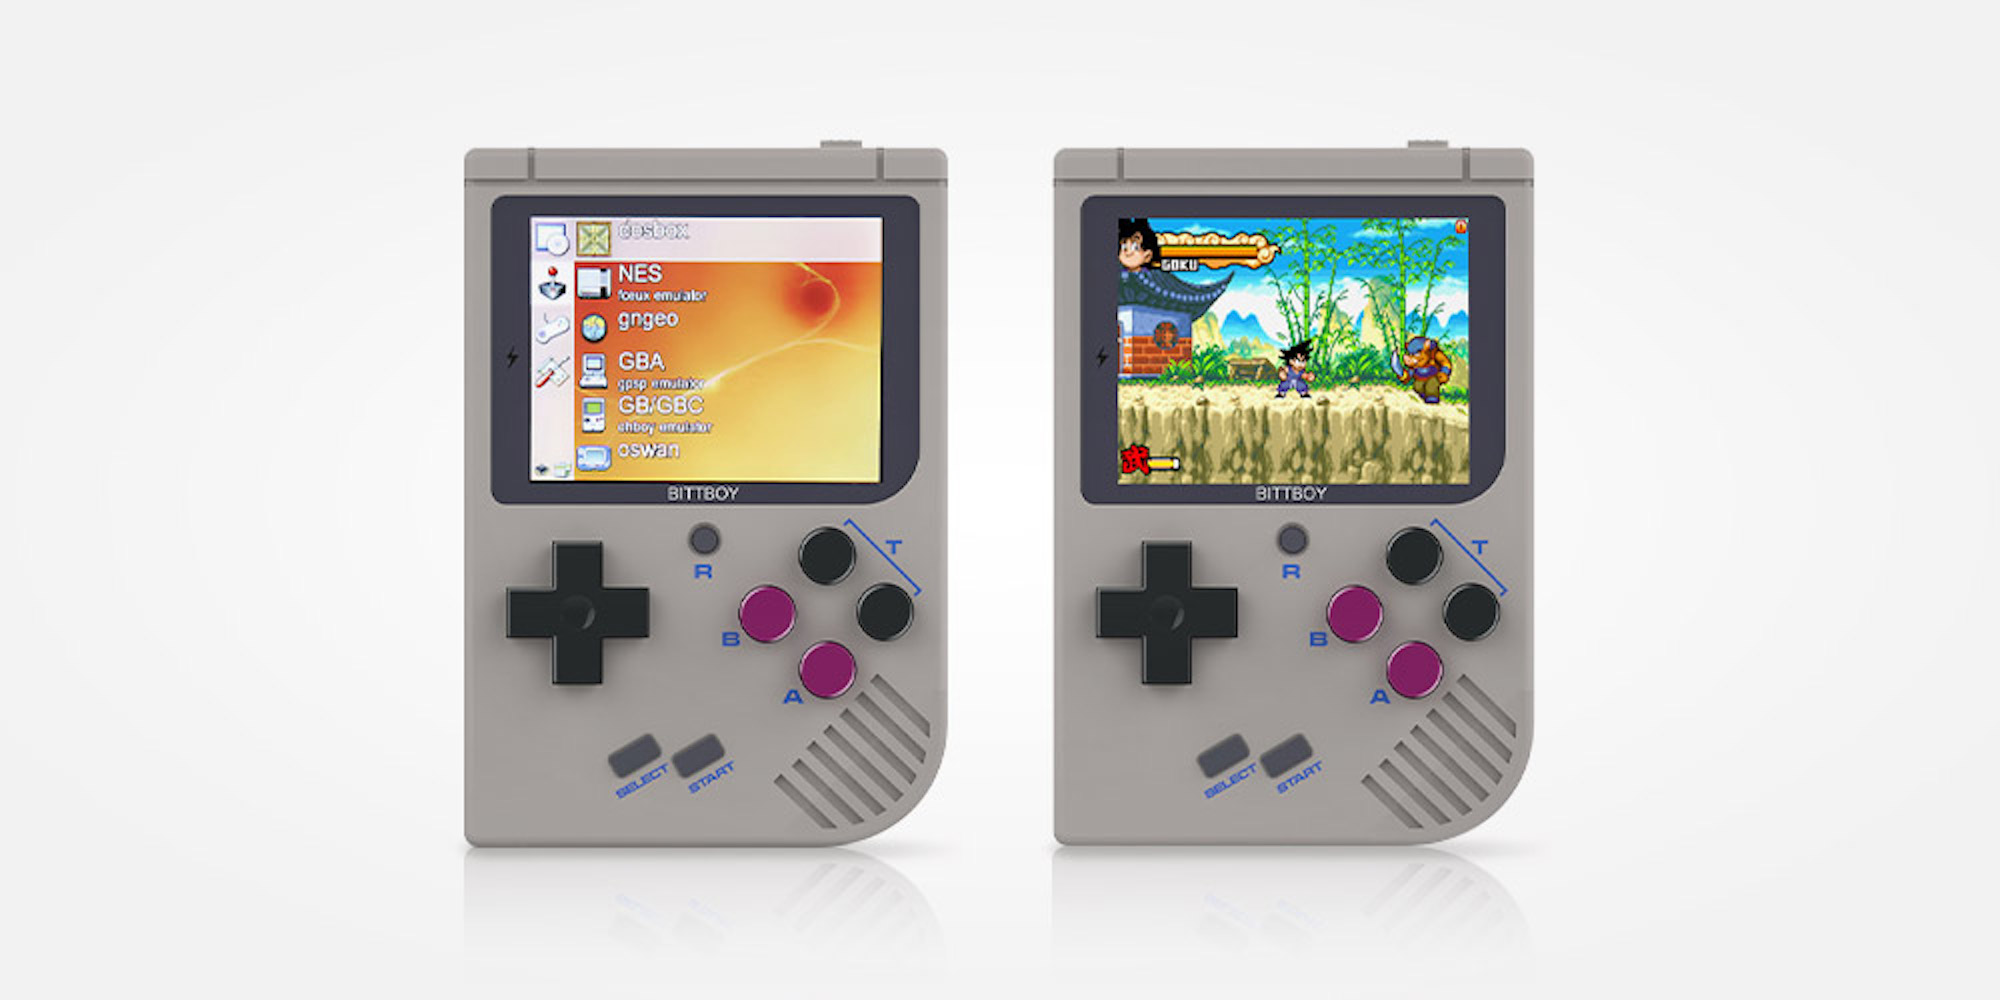 Play your favorite classic games anywhere with BittBoy, now $36